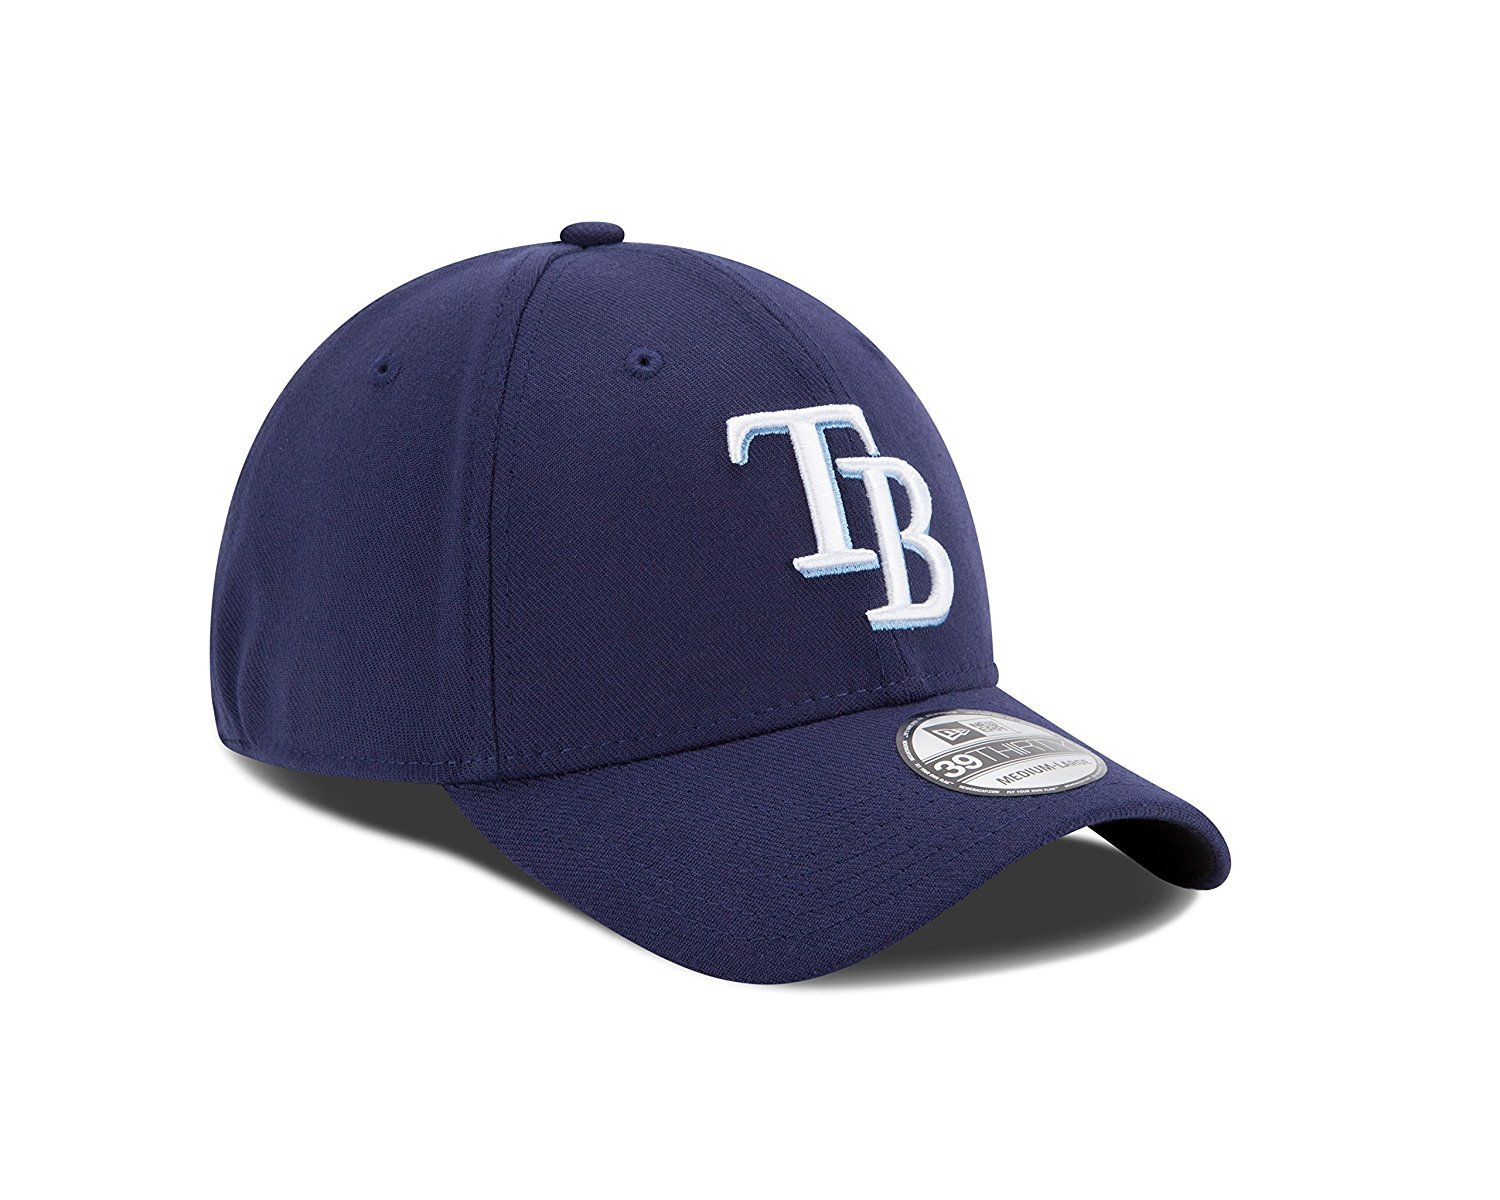 MLB Tampa Bay Rays Team Classic Game 39Thirty Stretch Fit Cap, Blue, Small/Medium